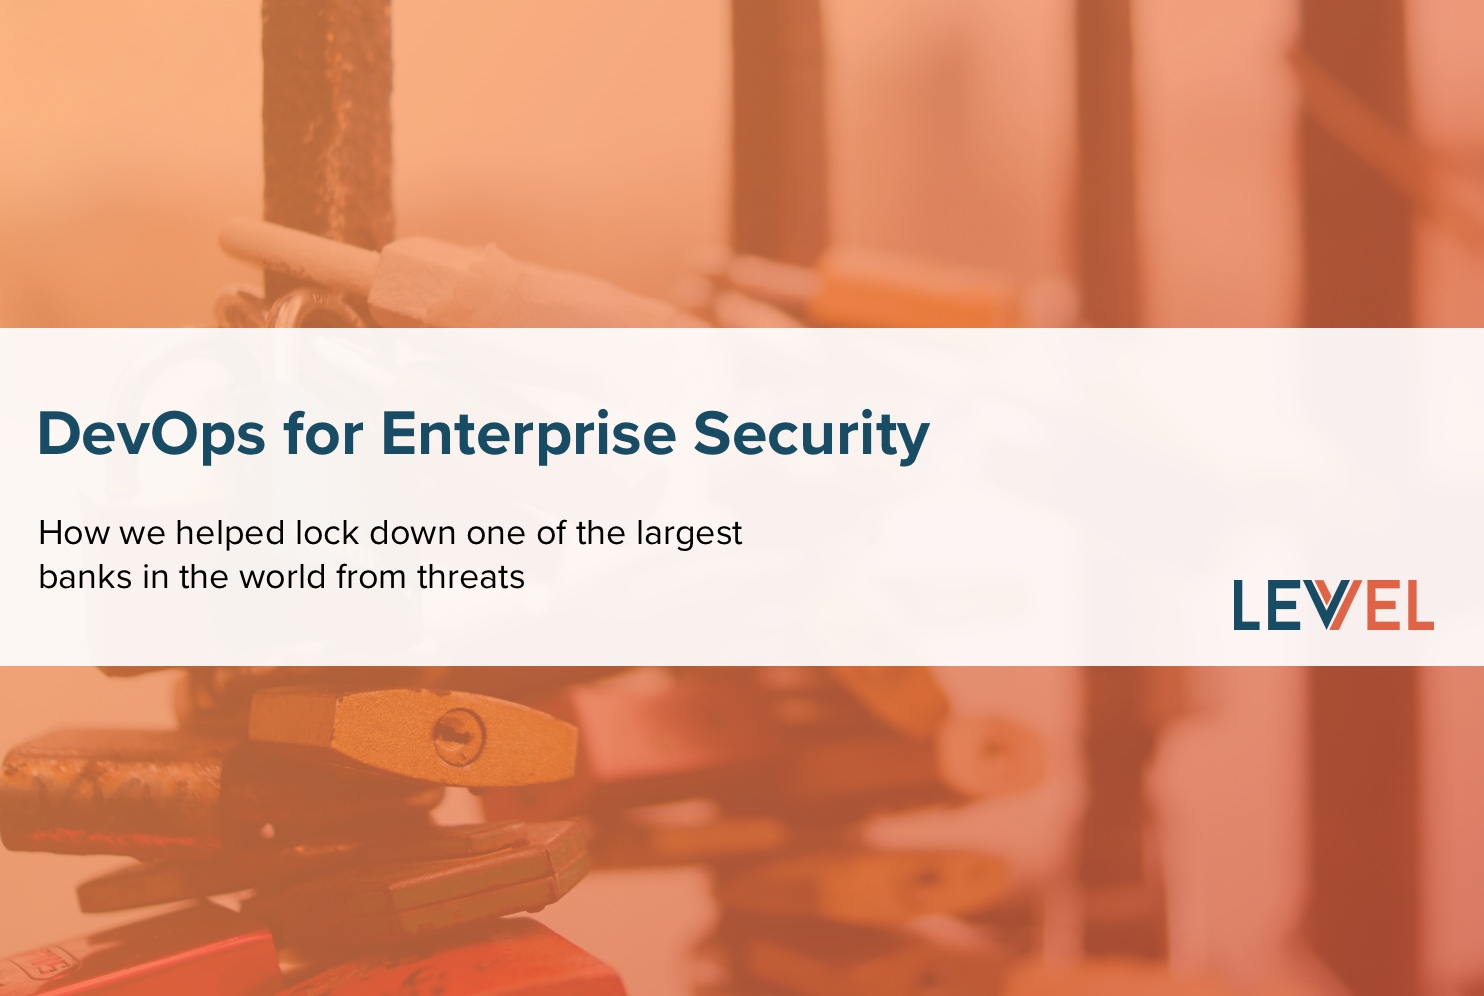 DevOps for Enterprise Security